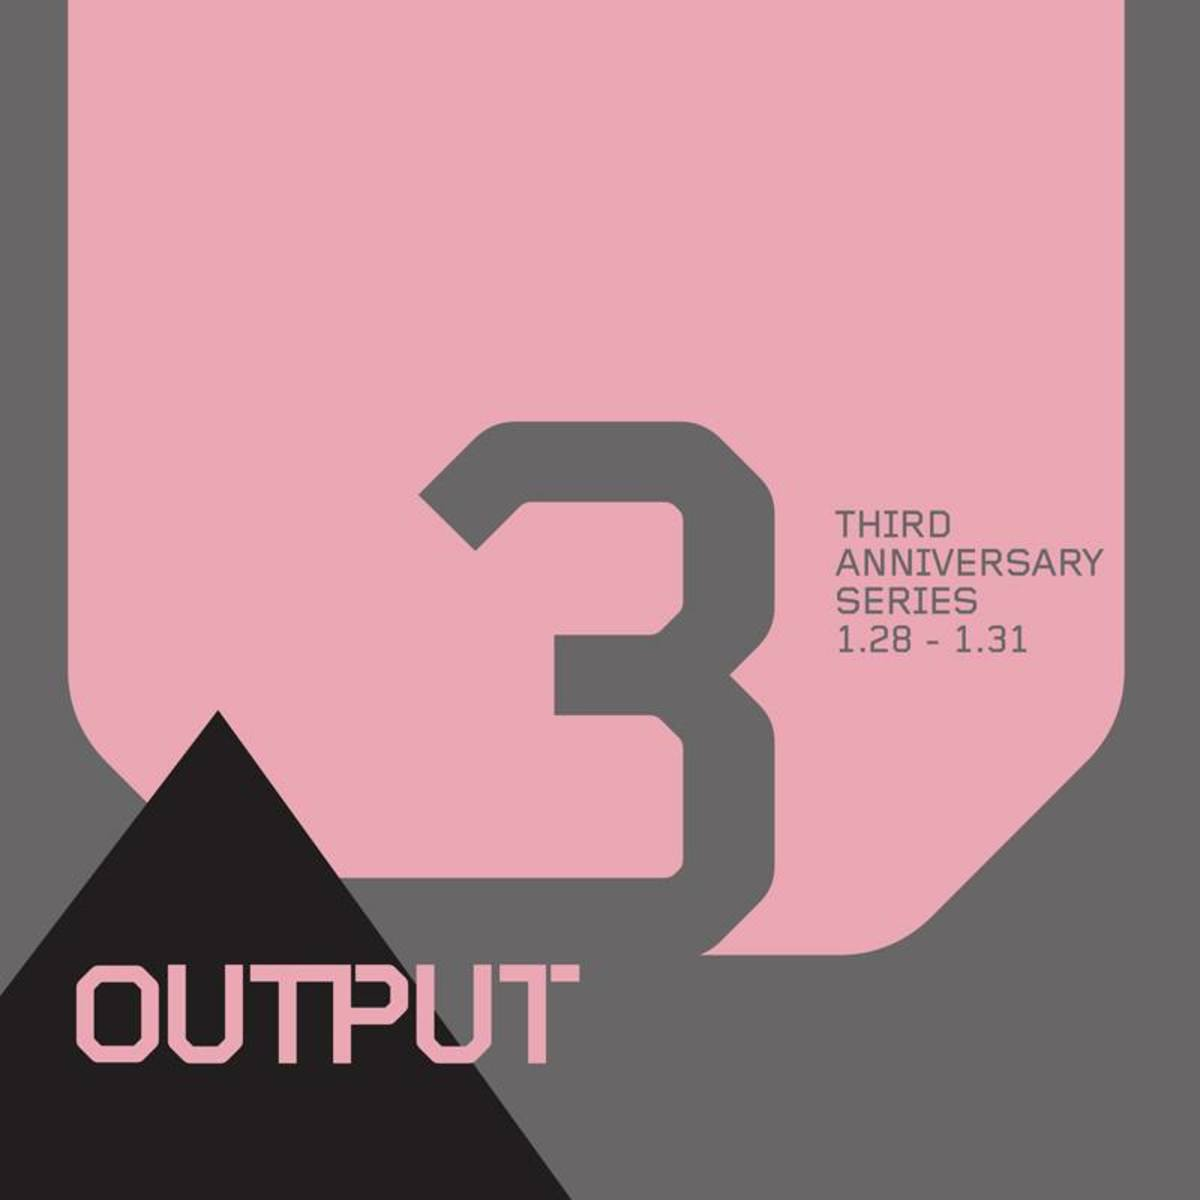 Output 3 anniversary